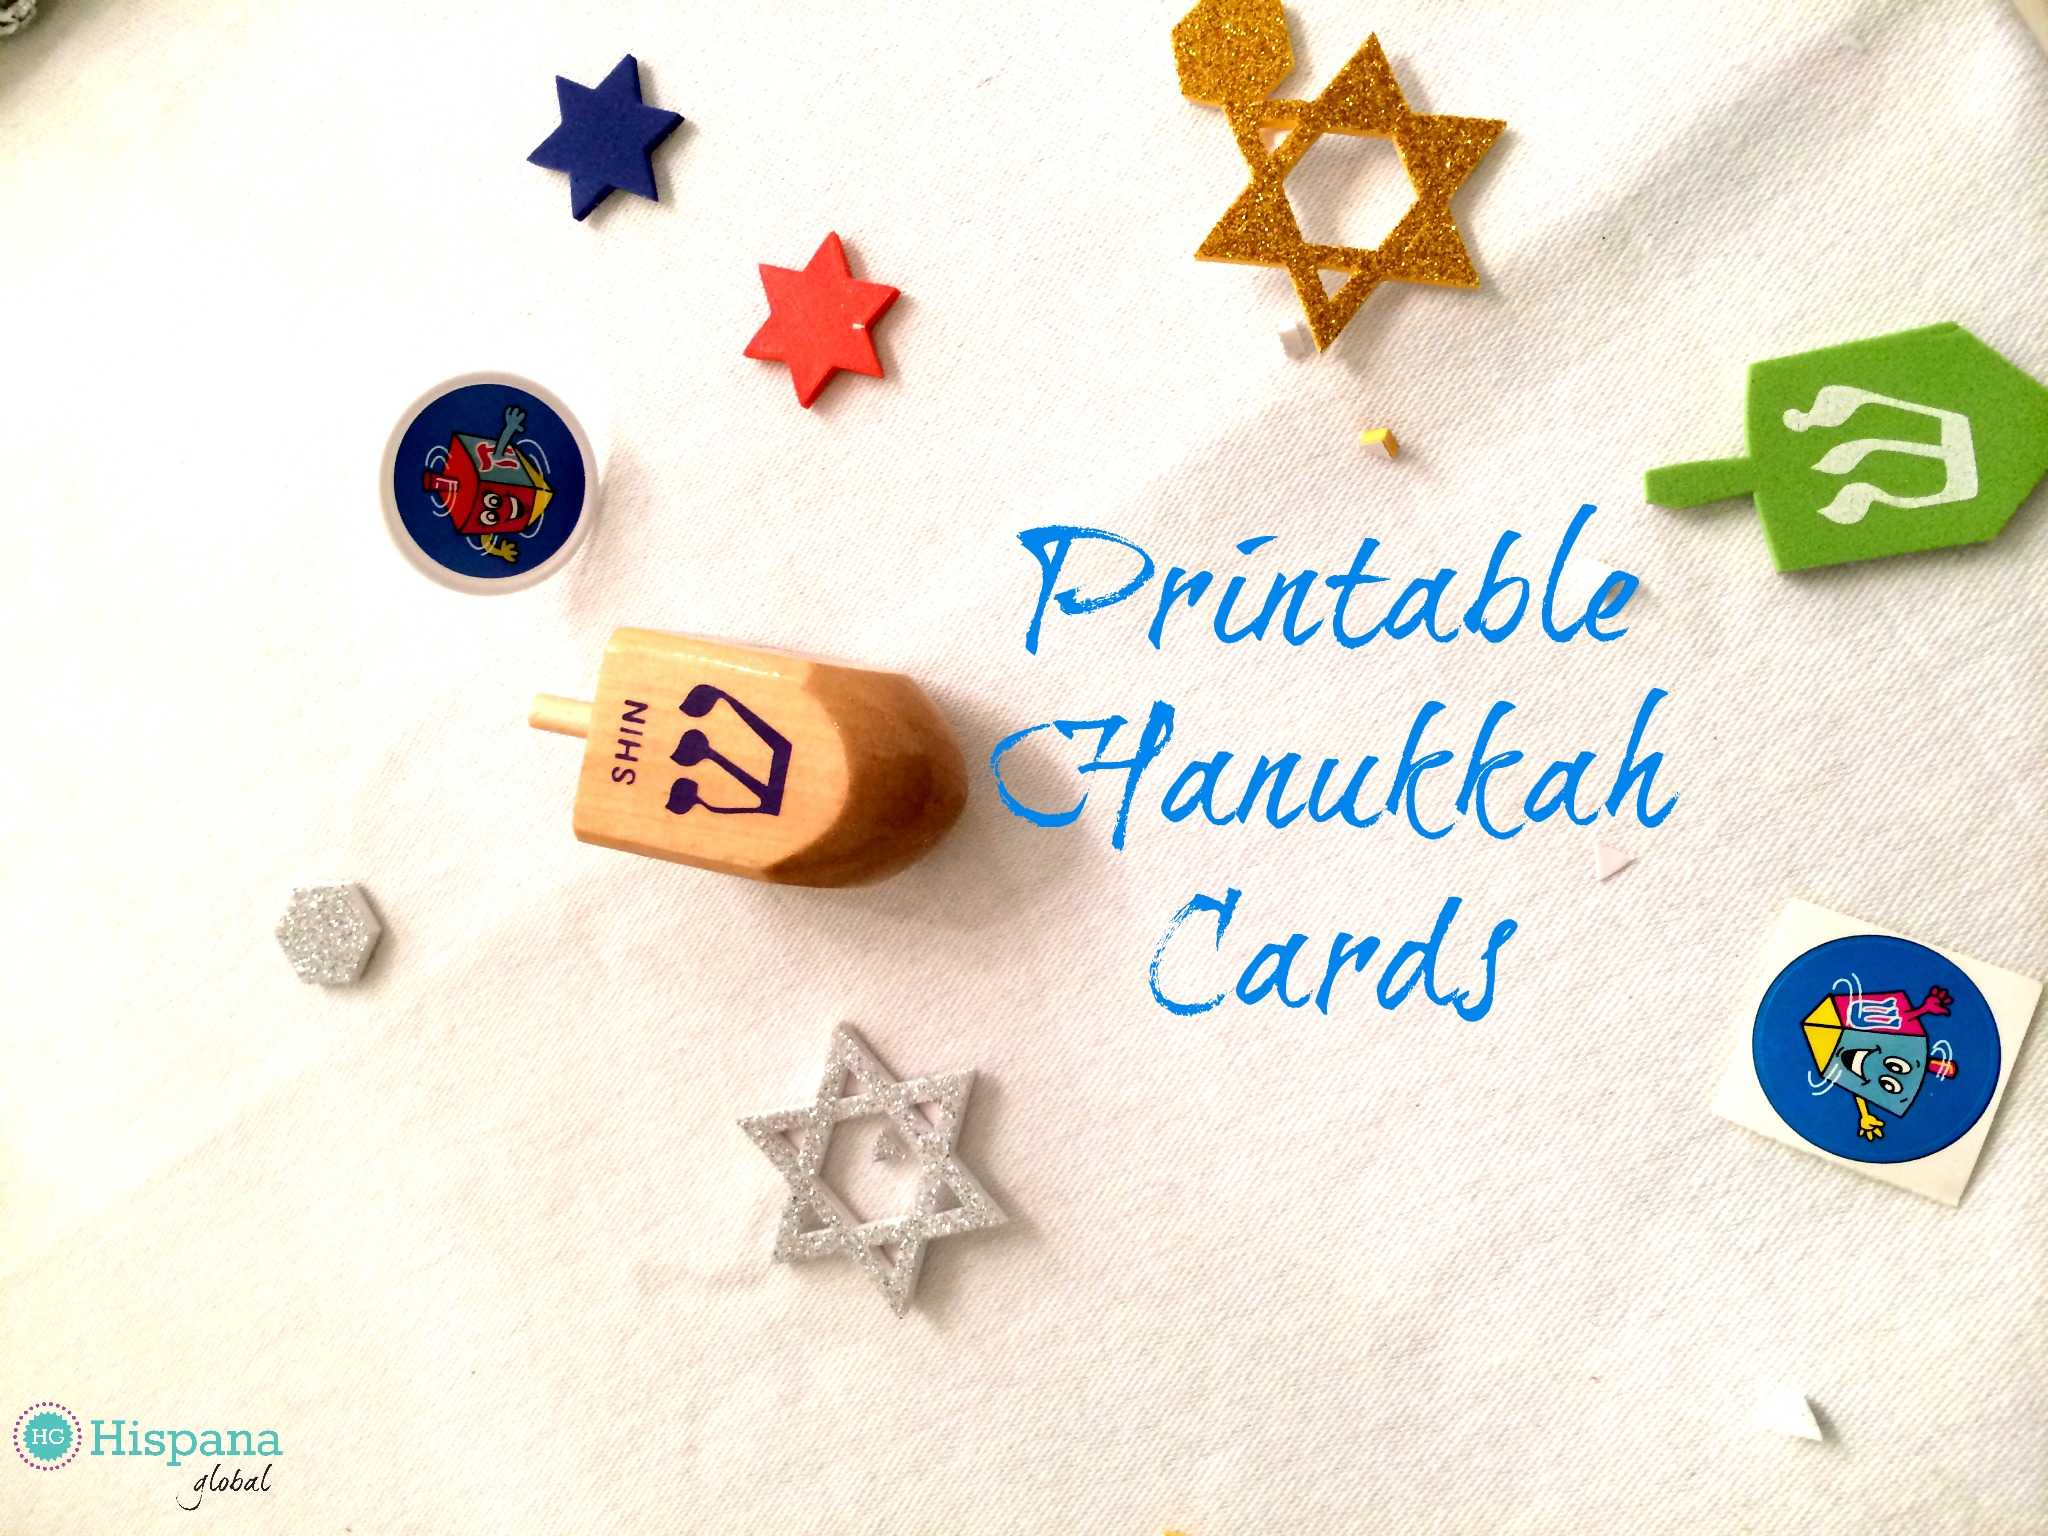 This is a picture of Striking Printable Hanukkah Cards